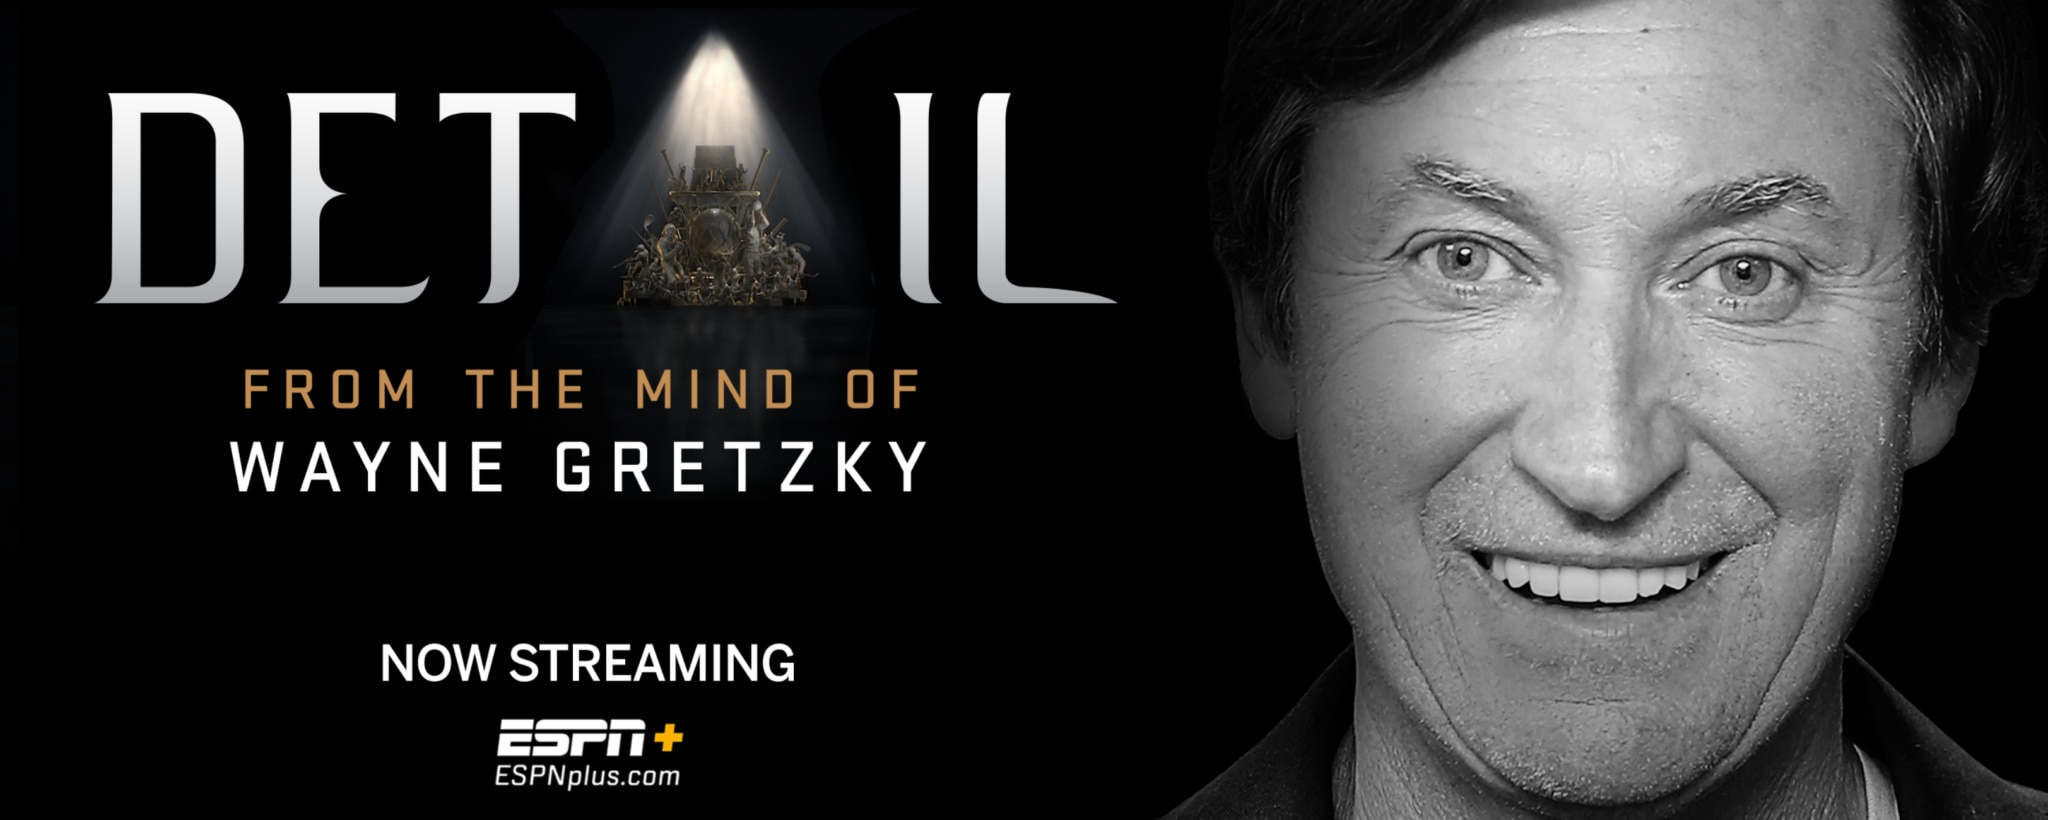 """""""The Great One"""" Wayne Gretzky Joins Detail Exclusively on ESPN+"""